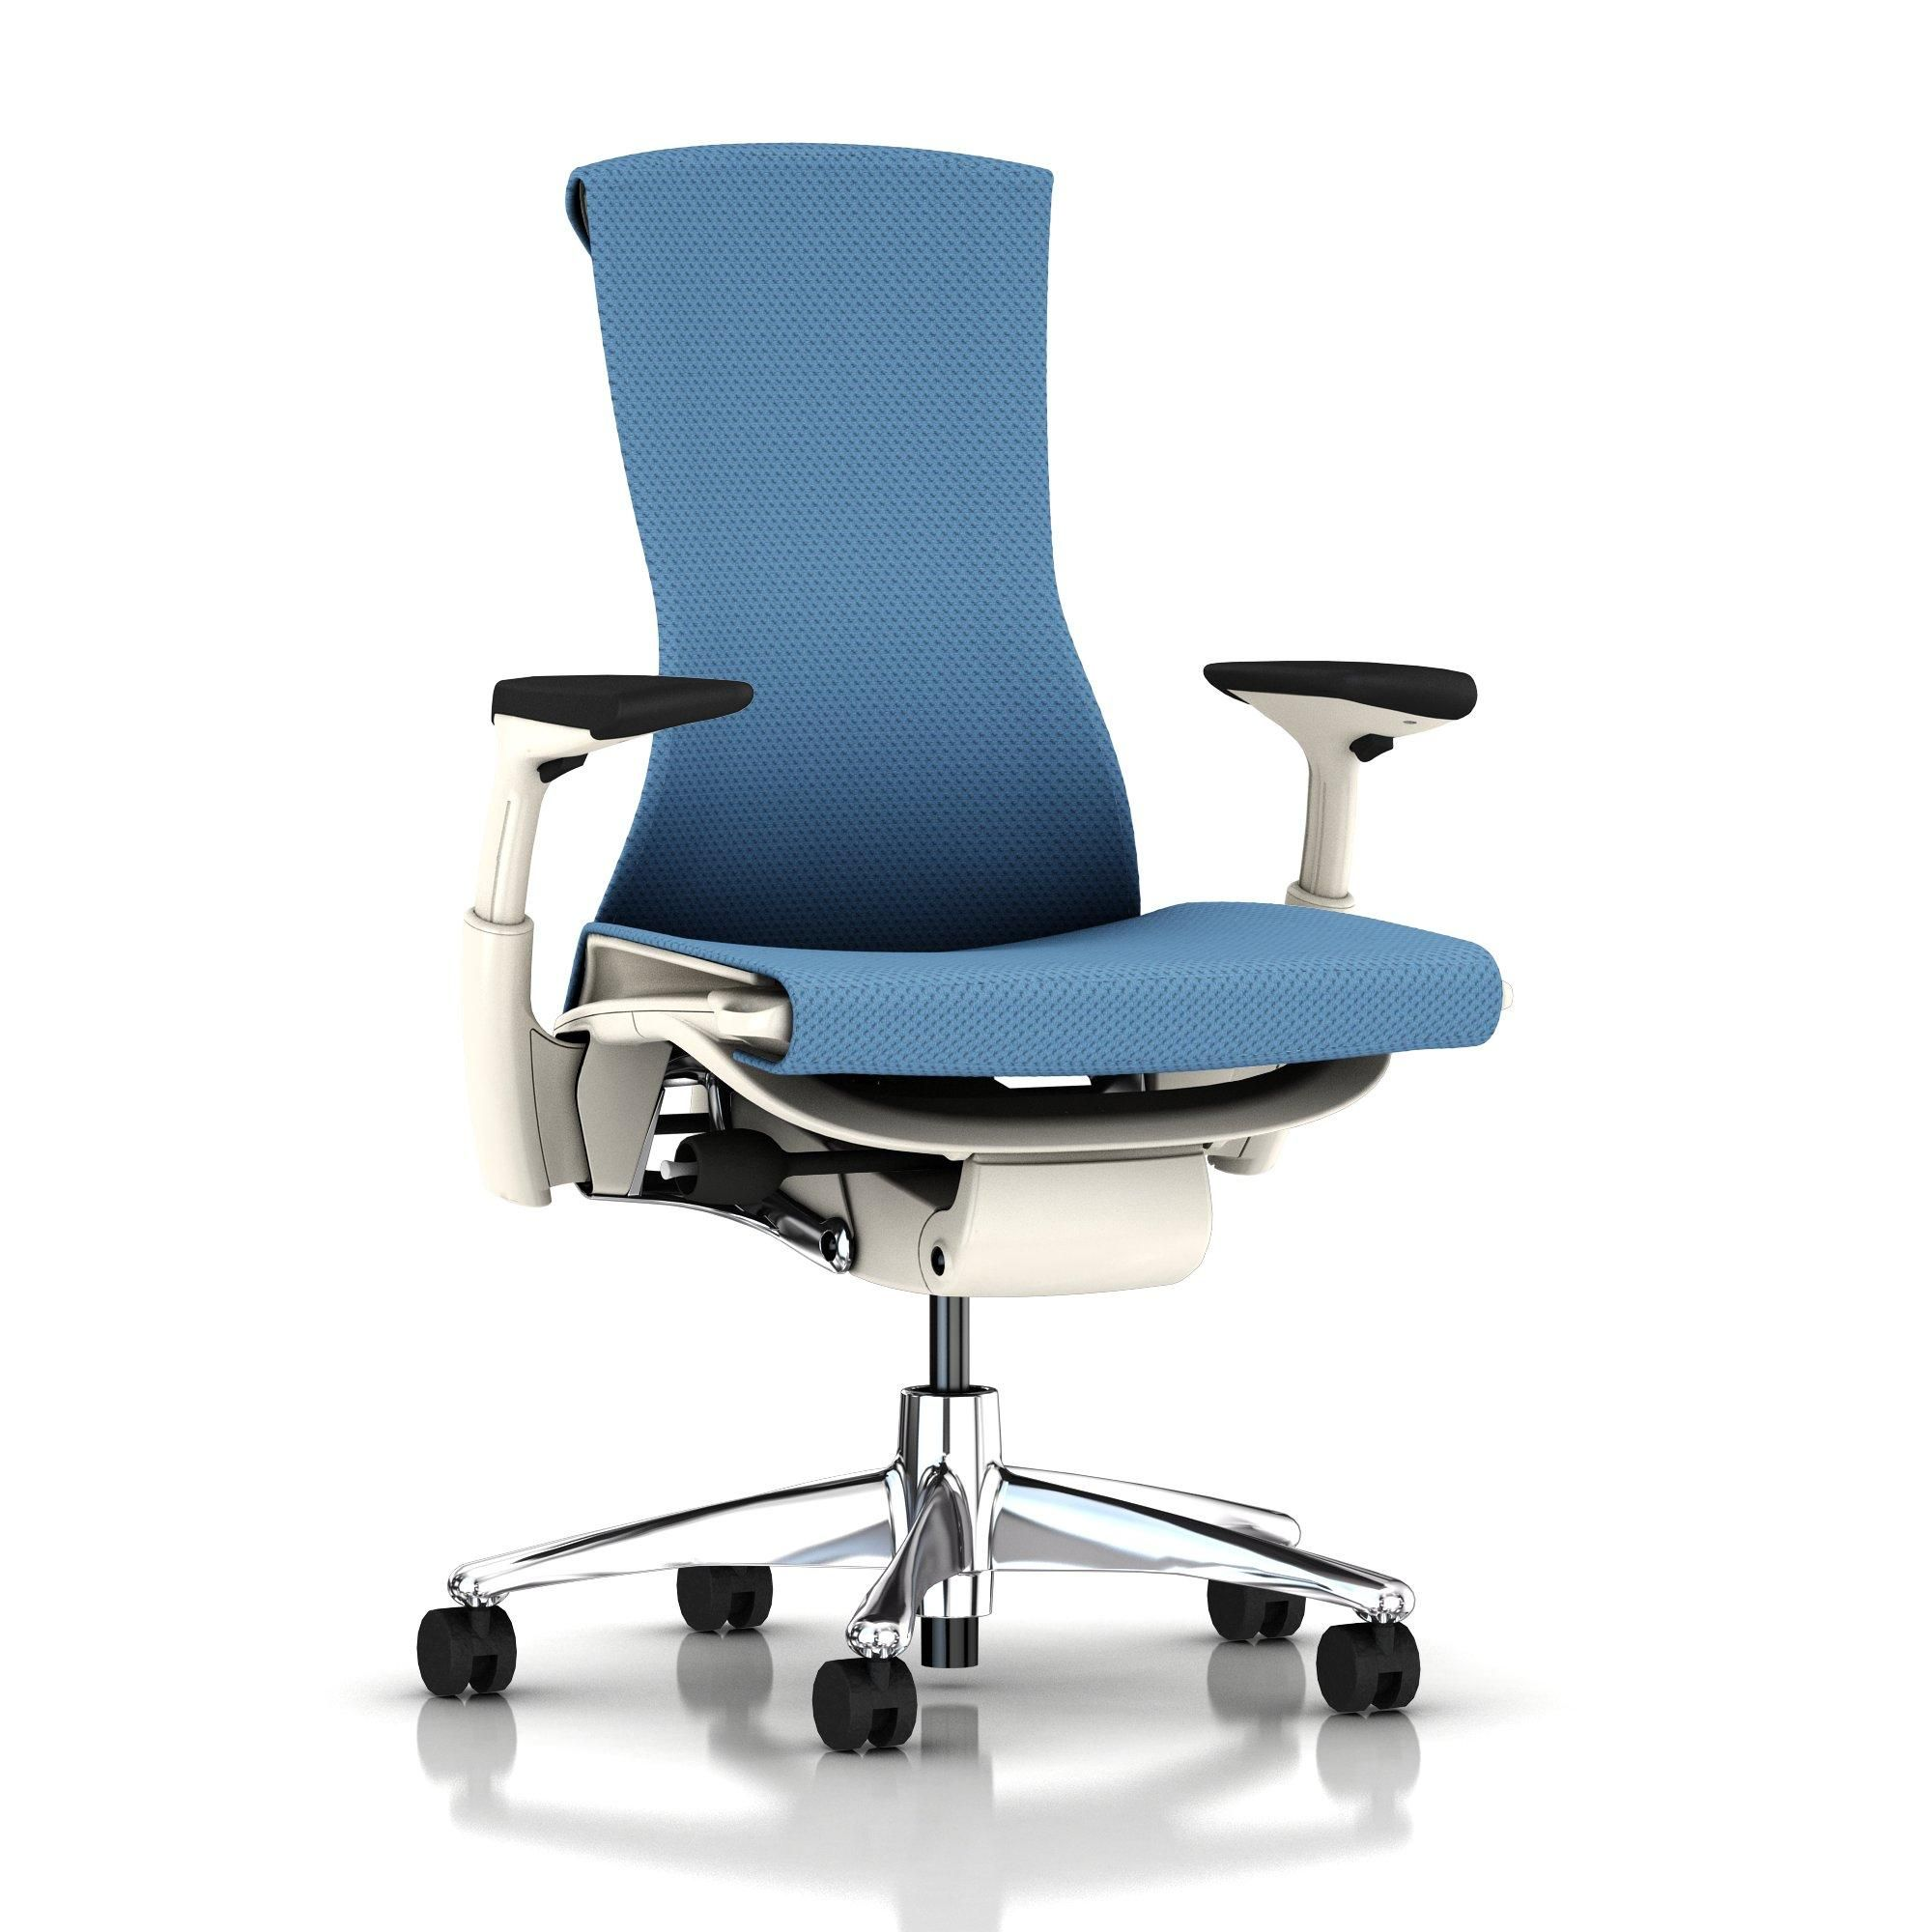 Herman Miller Embody Chair Blue Moon Balance With White Frame And